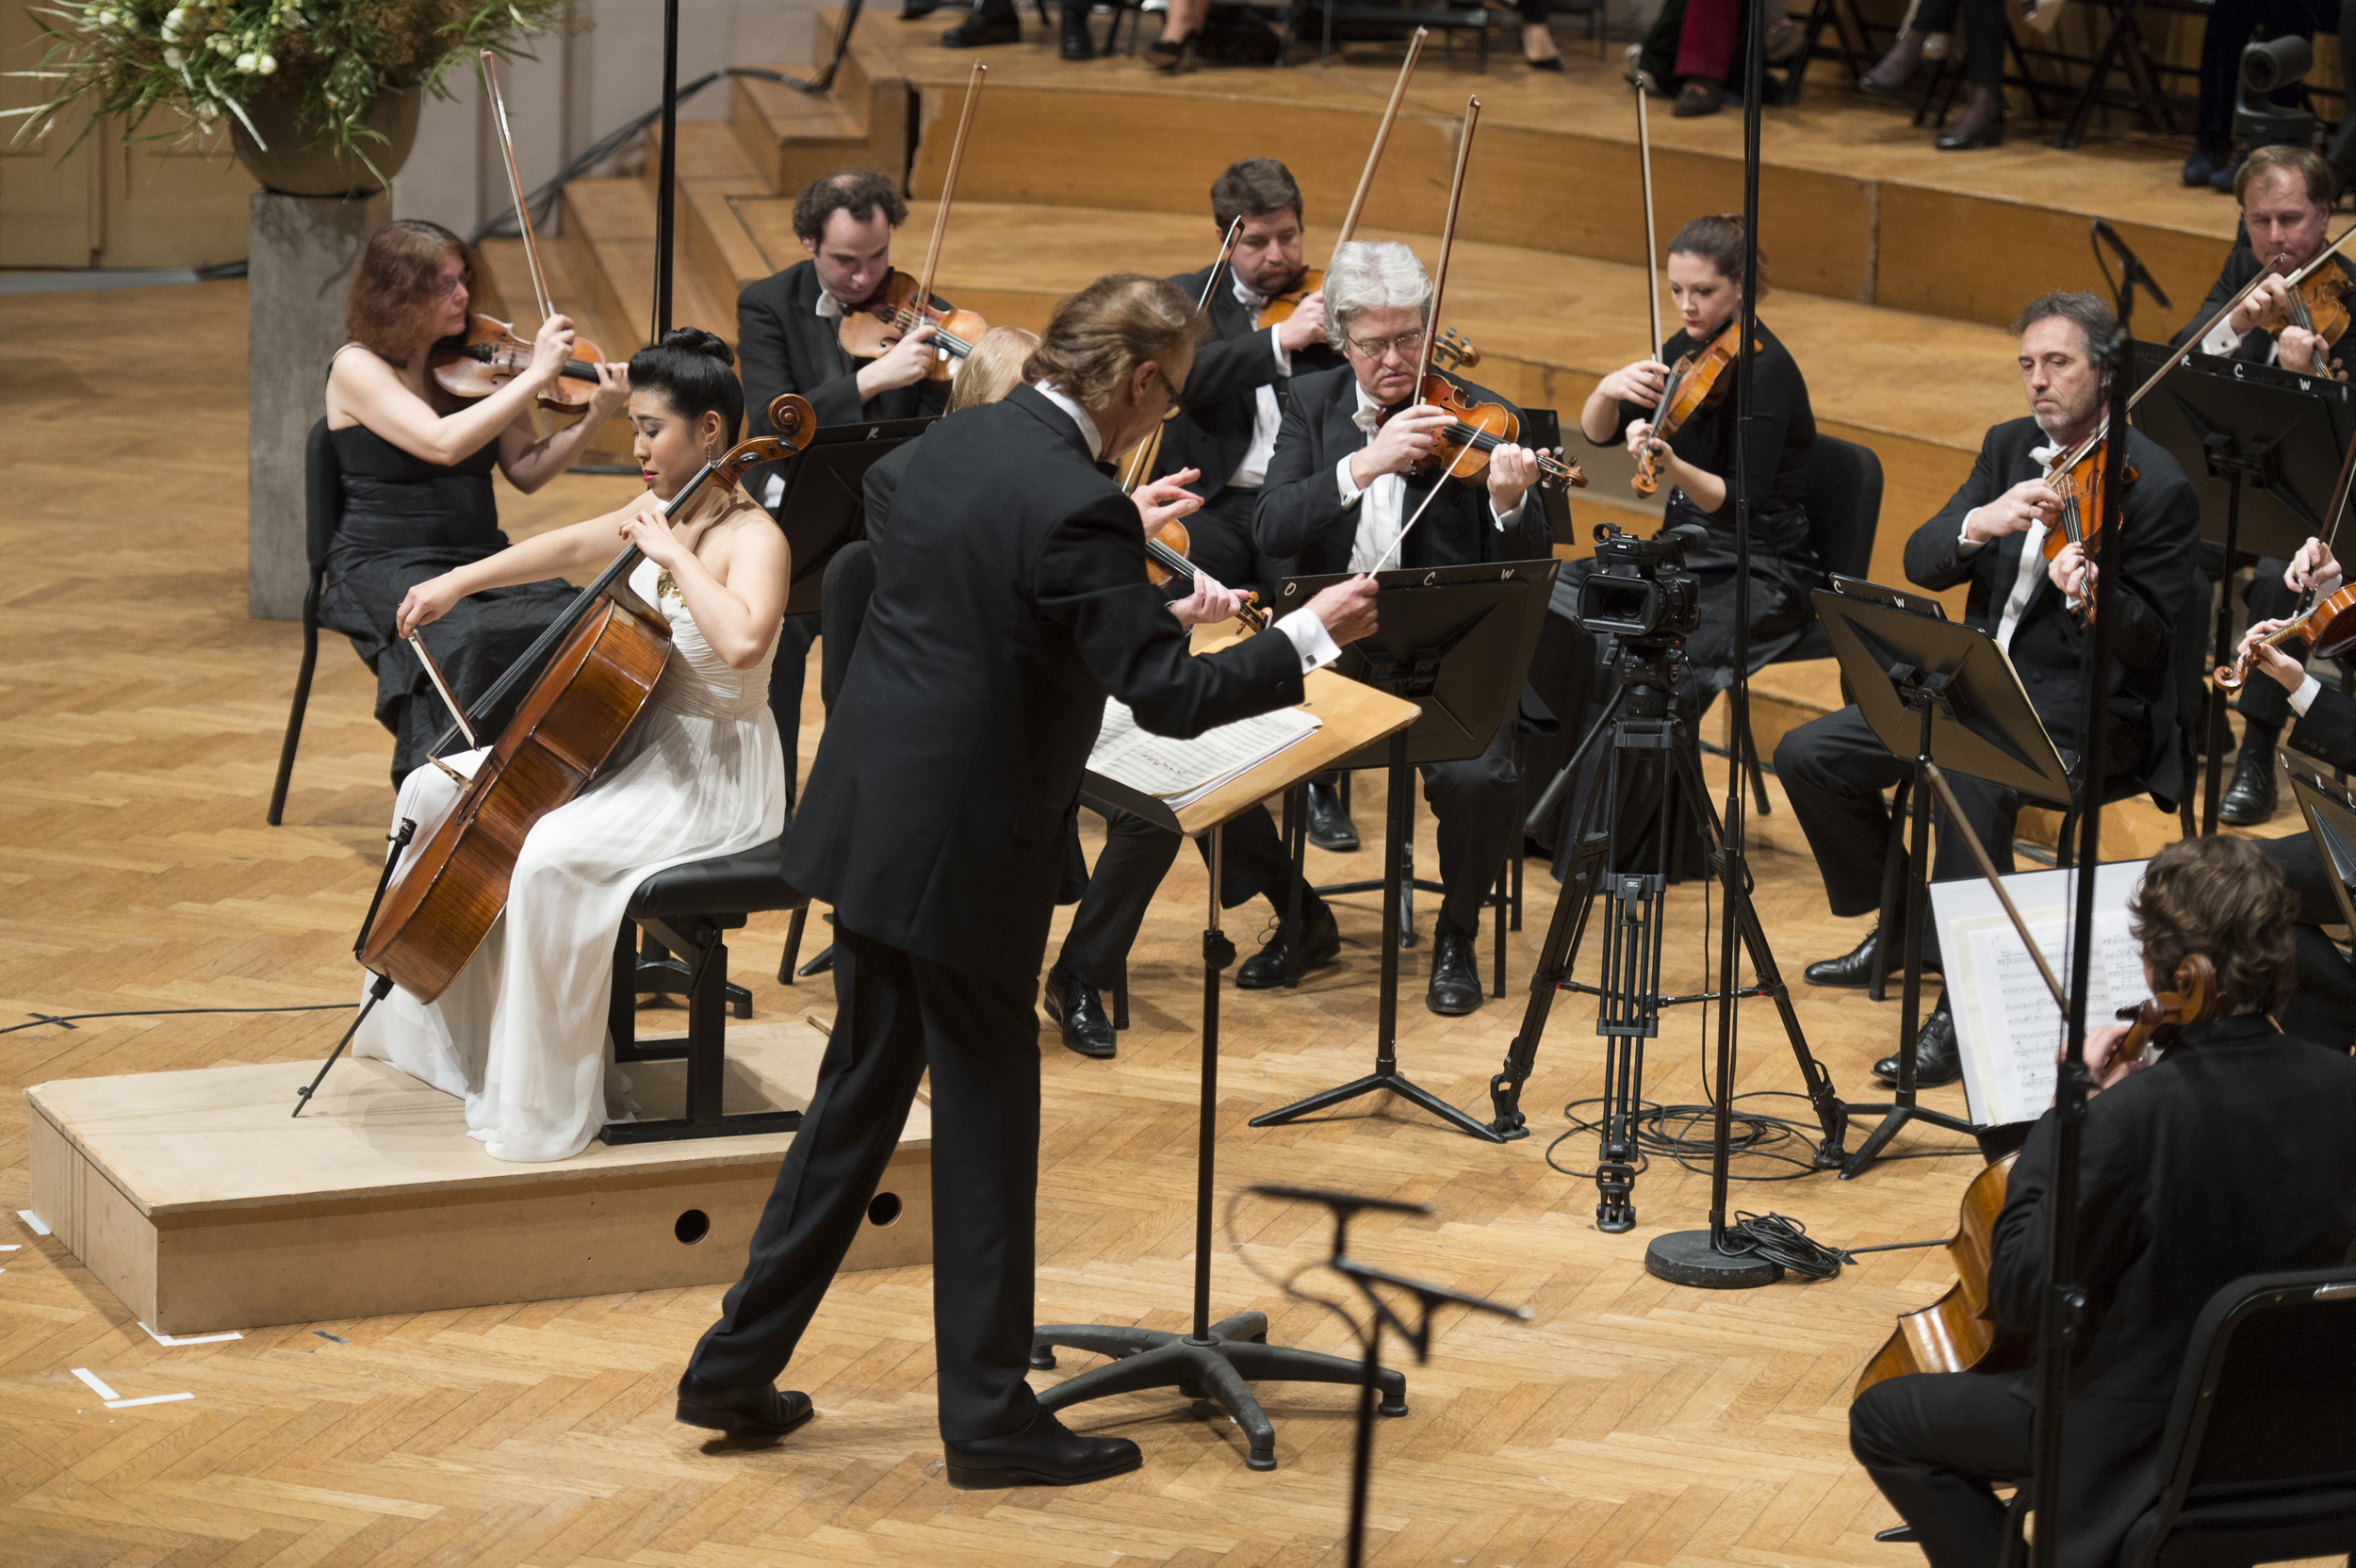 Tchaikovsky Rococo Variations with Augustin Dumay and Orchestre Royal de Chambre de Wallonie (2014)